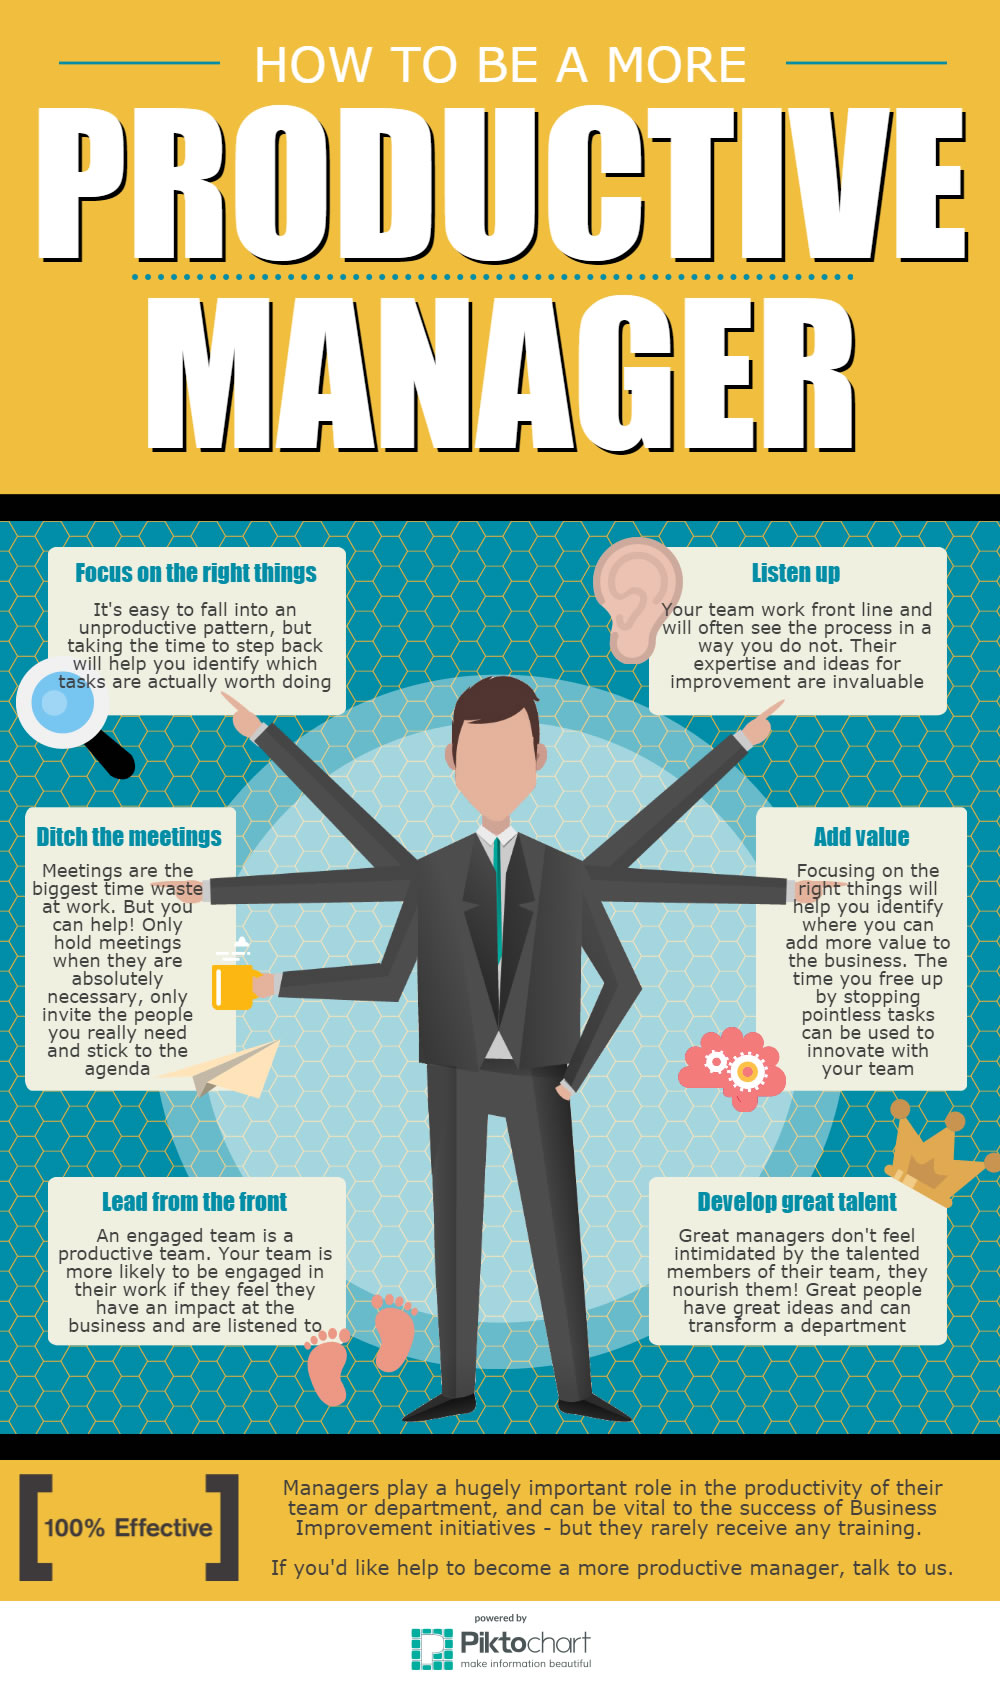 productive manager tips